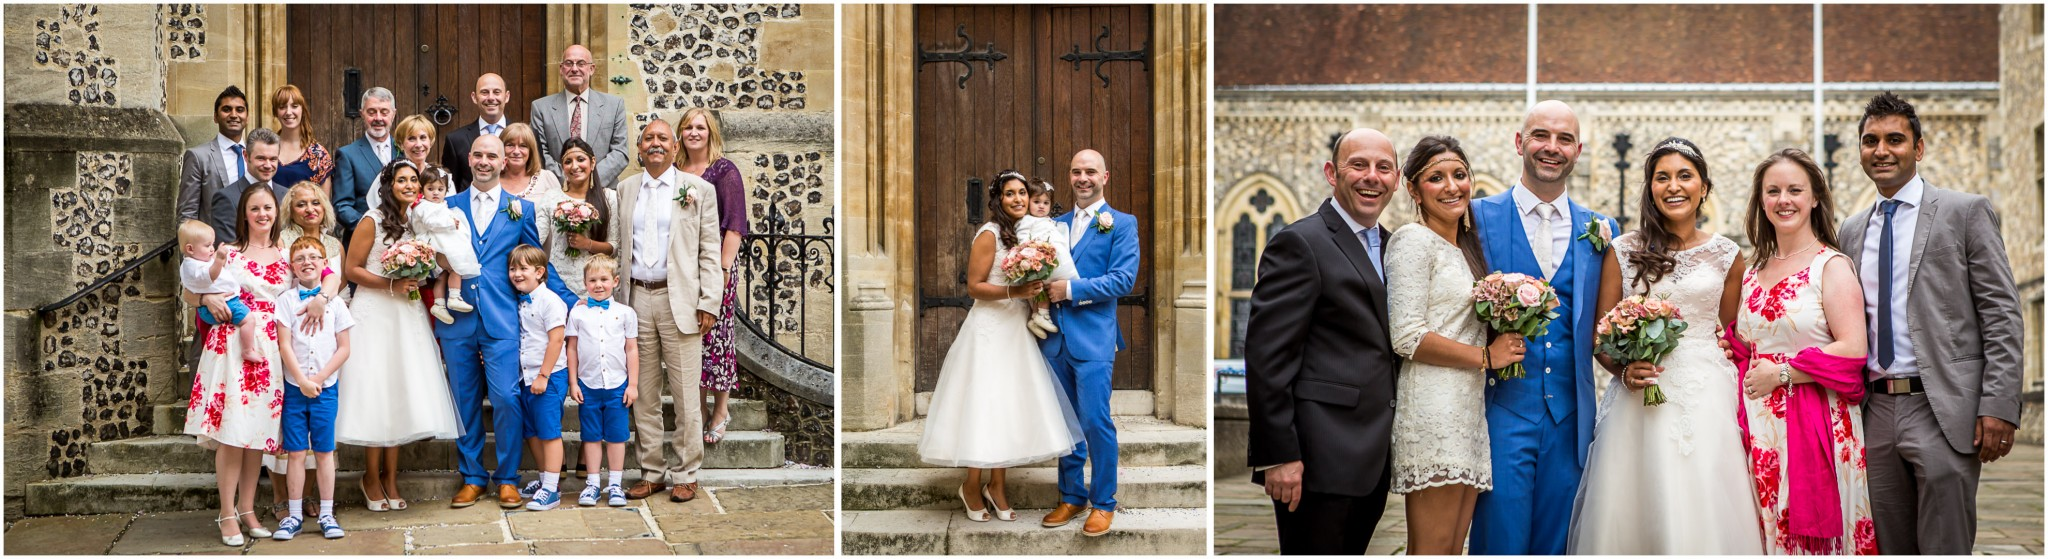 winchester-basing-room-wedding-photography-025